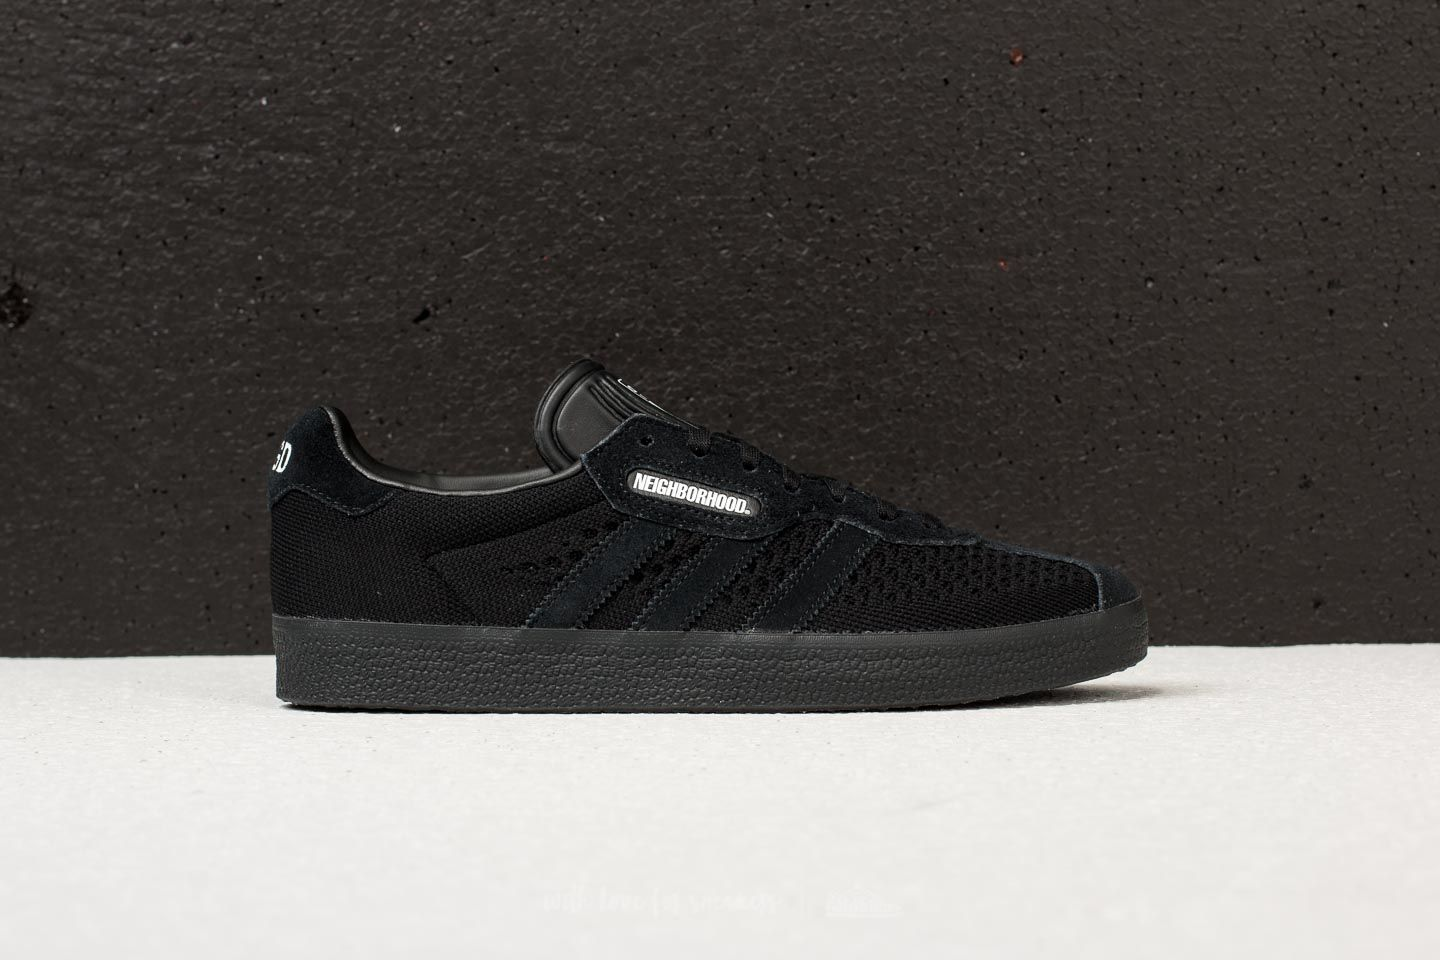 size 40 affa5 b401b adidas x Neighborhood Gazelle Super Core Black  Core Black at a great price  136 €